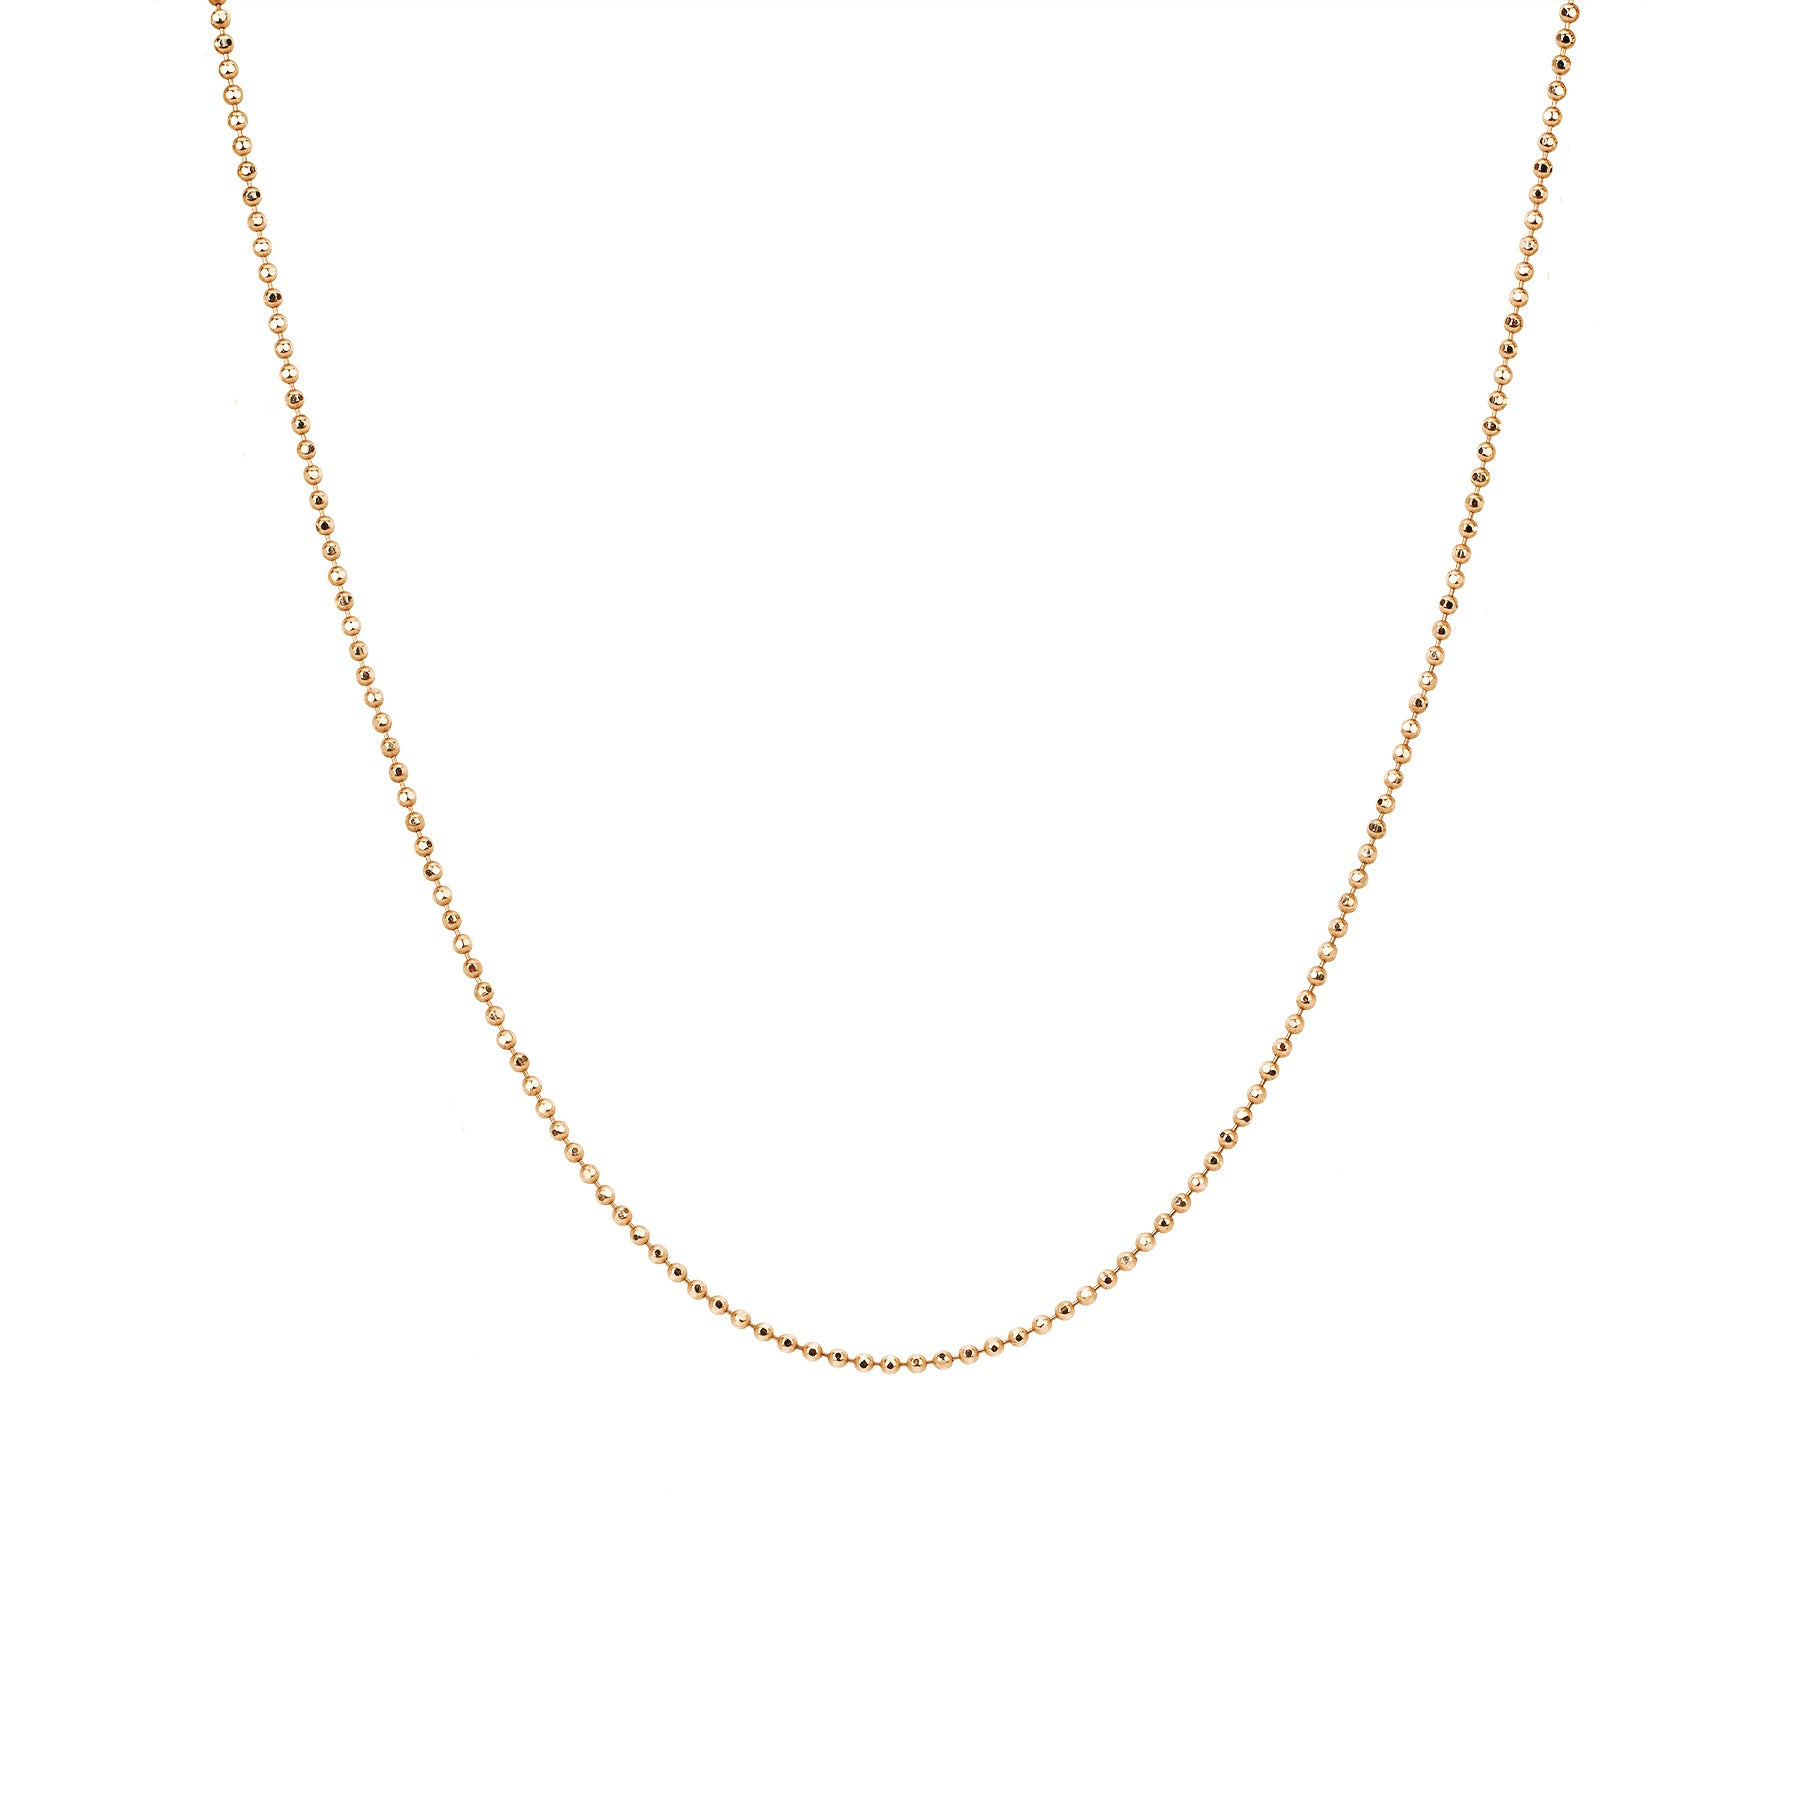 "16-18"" Gold Faceted Chain by EF Collection for Broken English Jewelry"